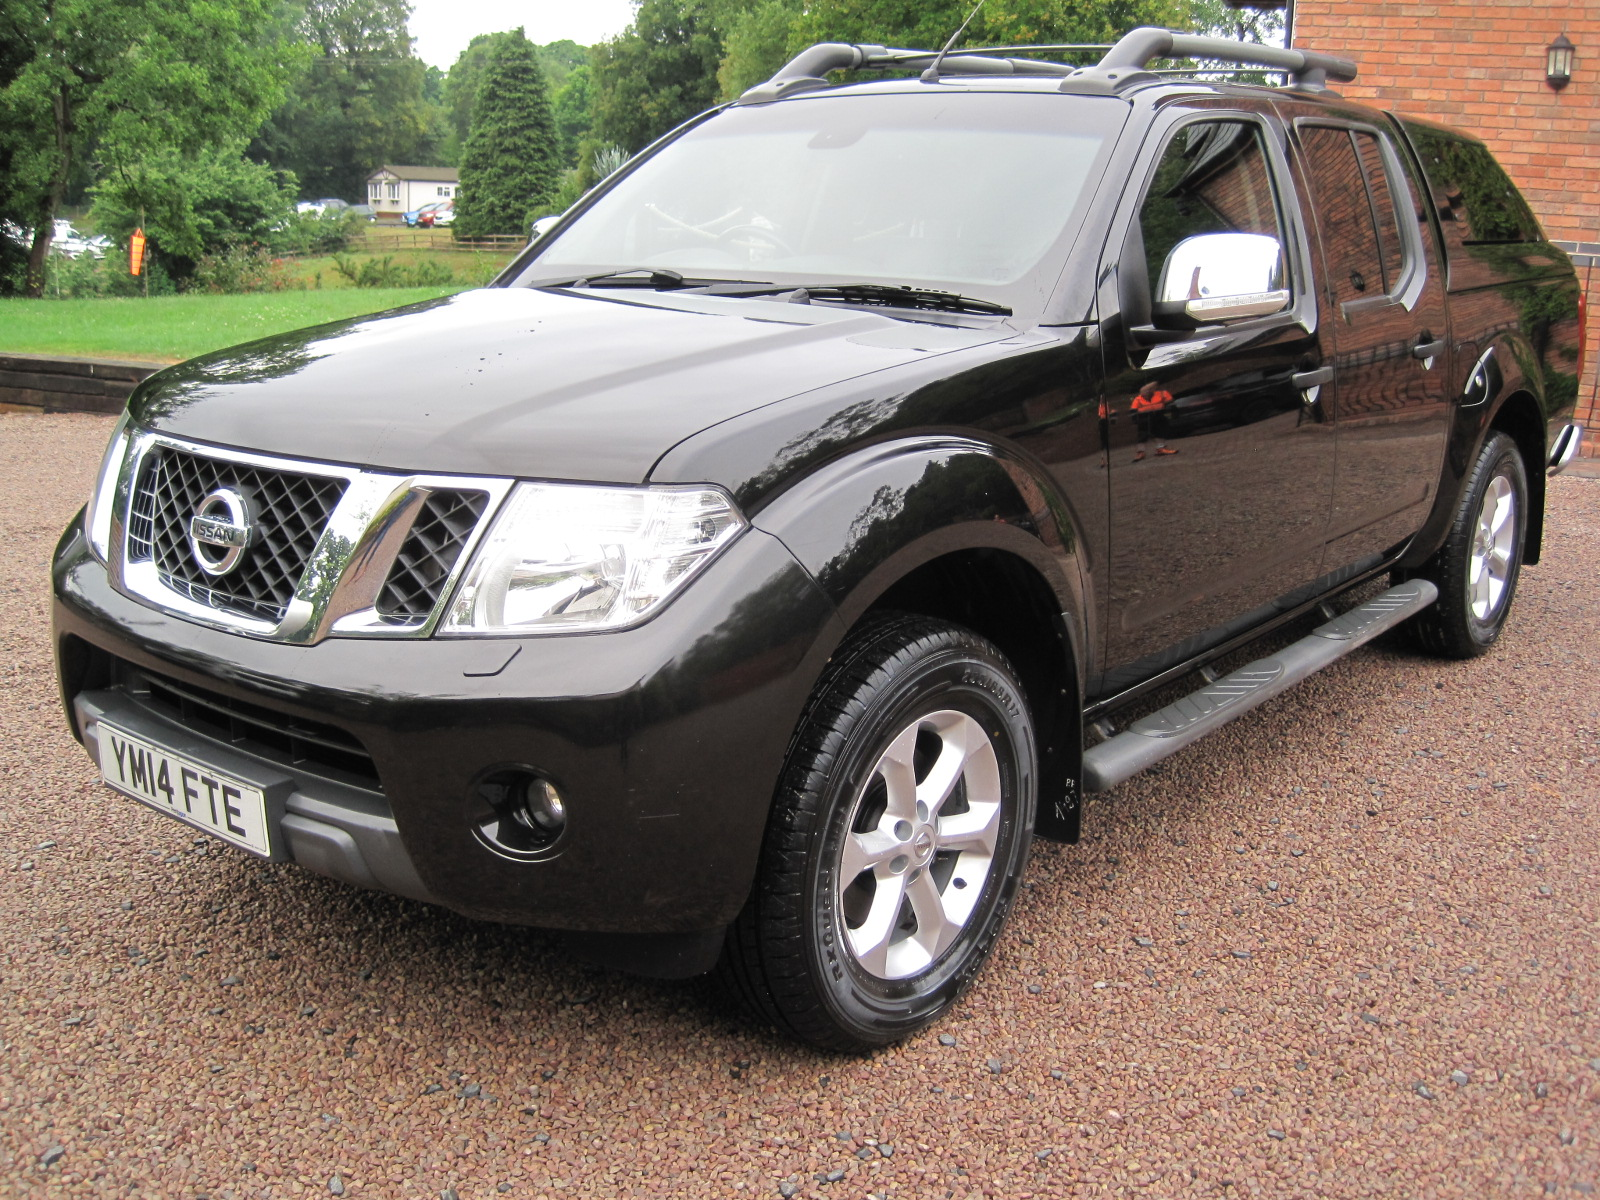 2014 14 Nissan Navara 2.5 dCi Tekna Double Cab Pickup 4dr ABSOLUTELY PRISTINE CONDITION! NO VAT! ONLY USED AS A CAR! SOLD! full